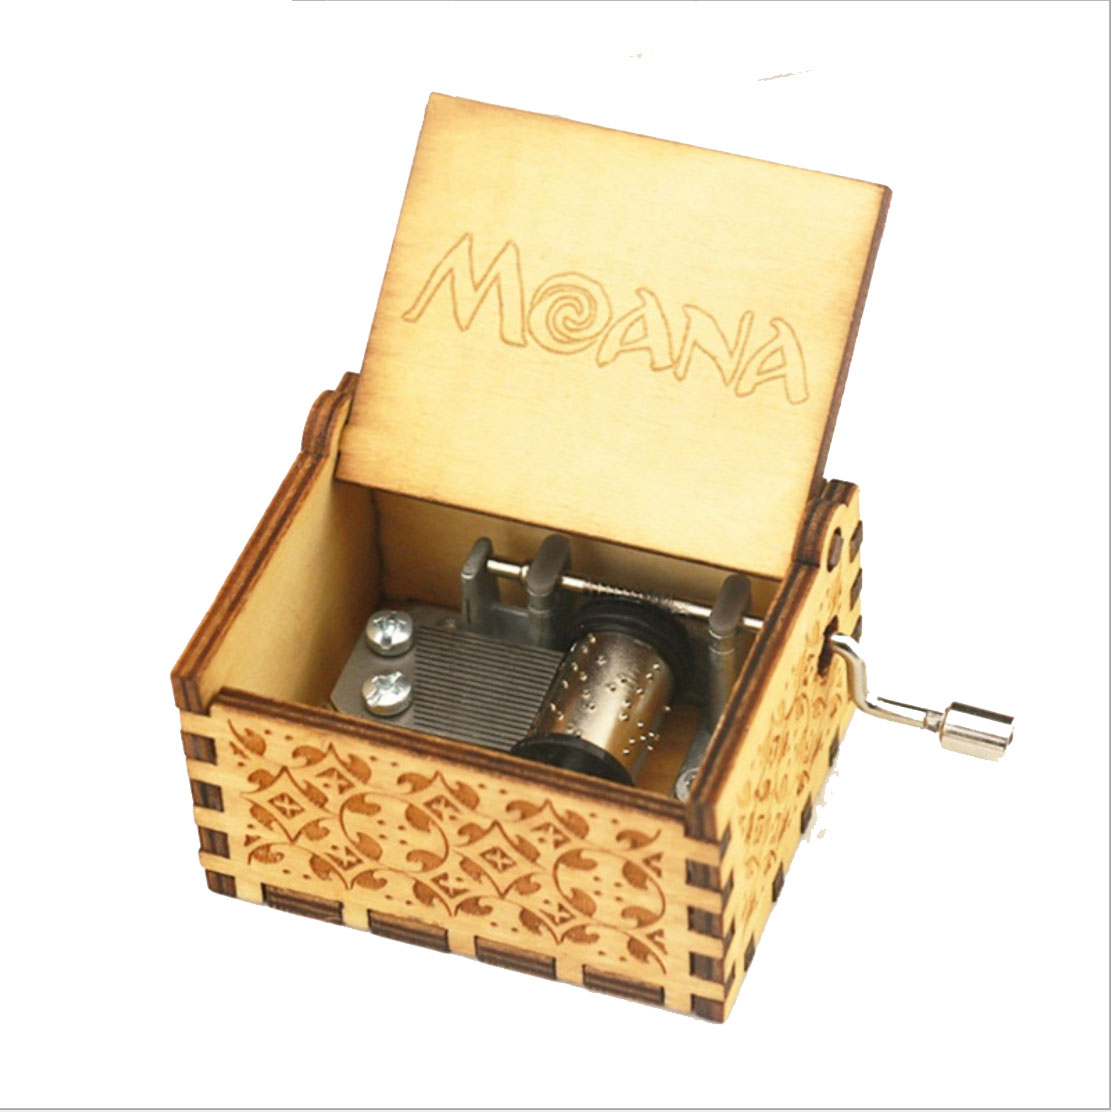 Hand Cranked Wood Music Box Castle In The Sky Star Wars Let It Go Wooden Music Box for Christmas Gifts in Music Boxes from Home Garden